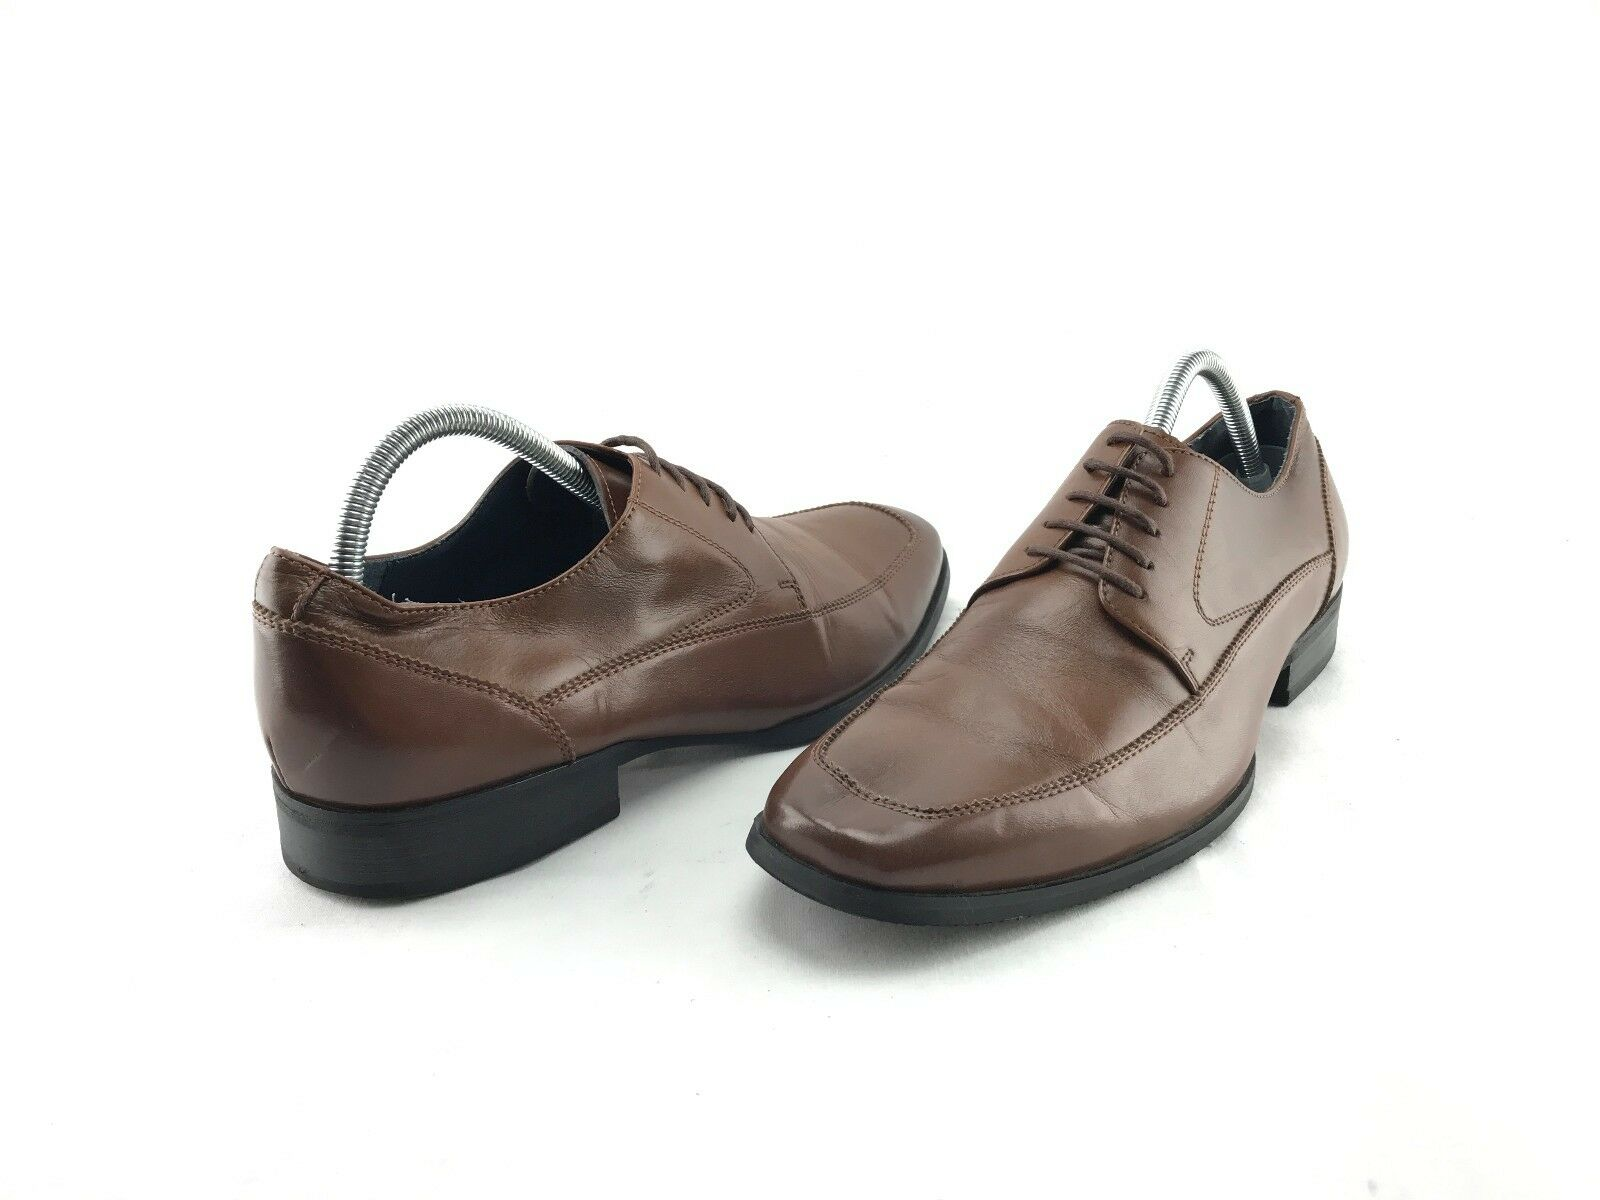 Steve Madden Sayge Uomo's Brown Lace Up Pelle Oxford's US Size 9 M Shoes #889